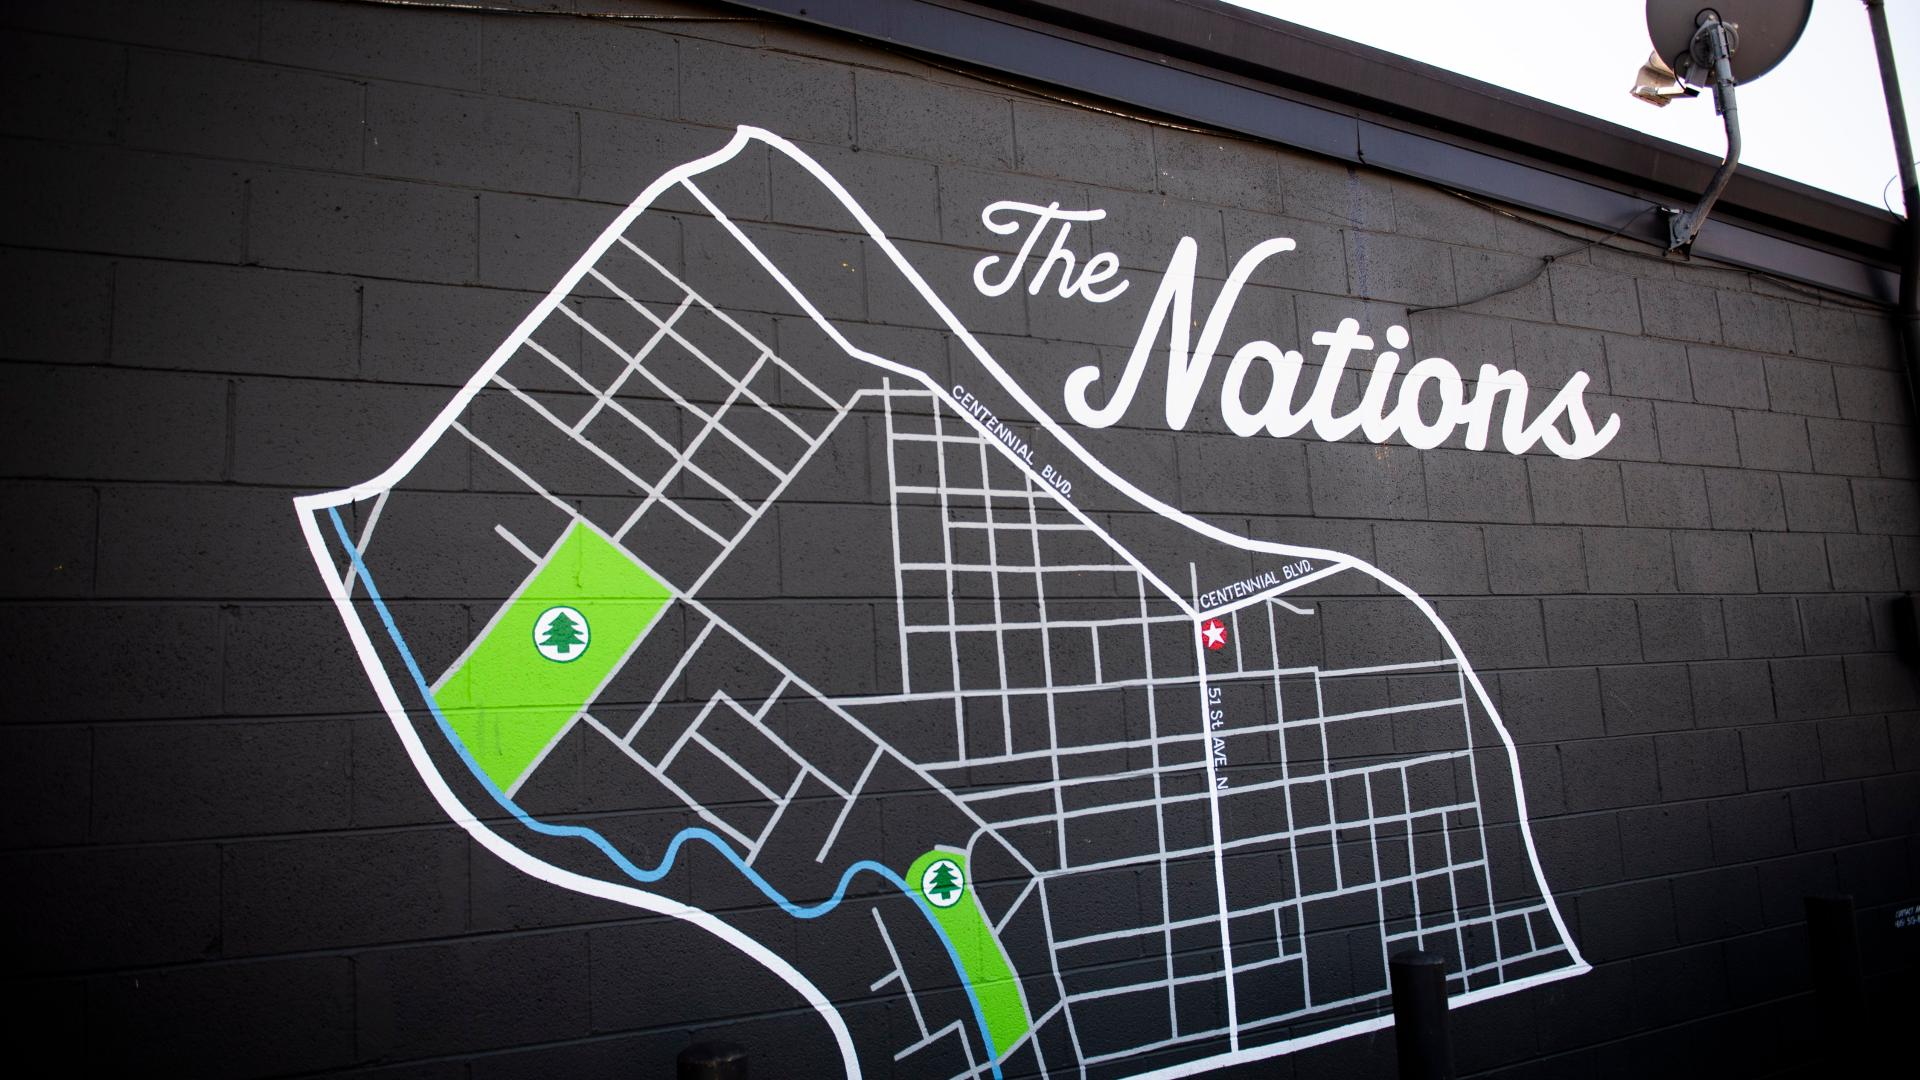 One of the fastest-growing neighborhoods in Nashville